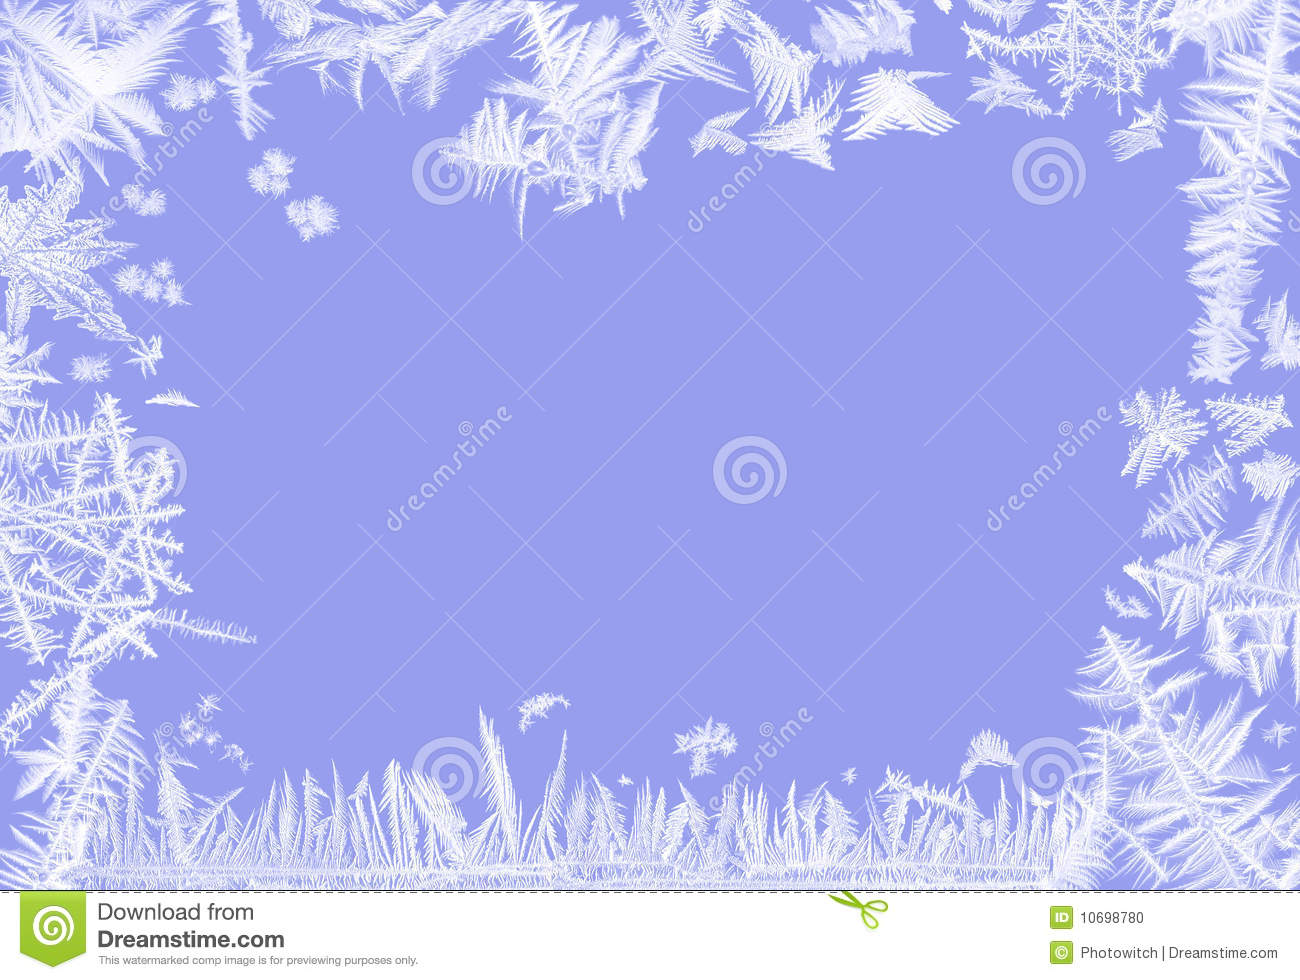 Frosty Border Stock Photo Image 10698780 : frosty border 10698780 from www.dreamstime.com size 1300 x 980 jpeg 182kB